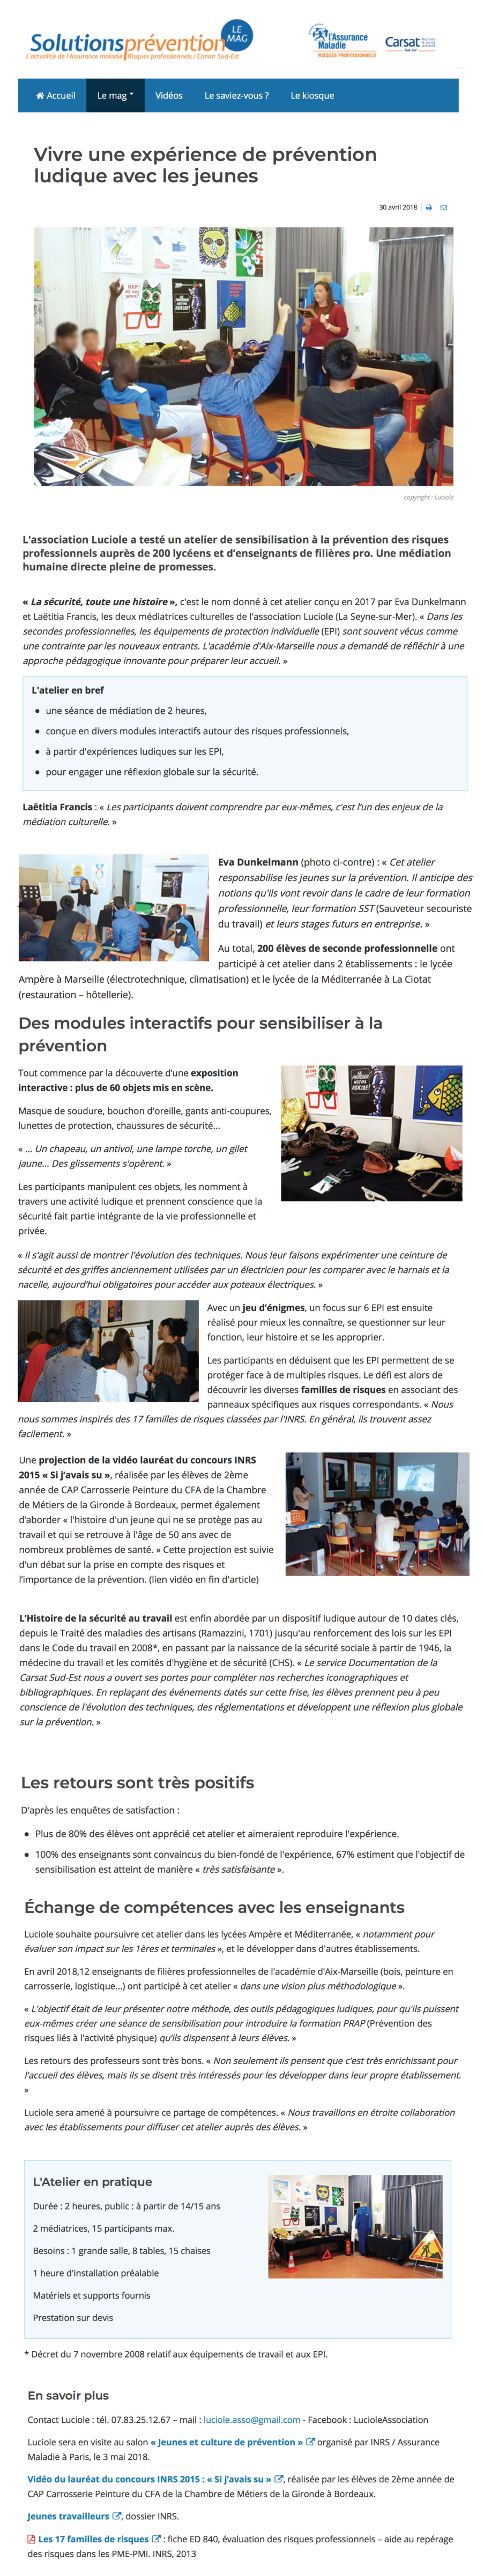 Article de Solution Prévention